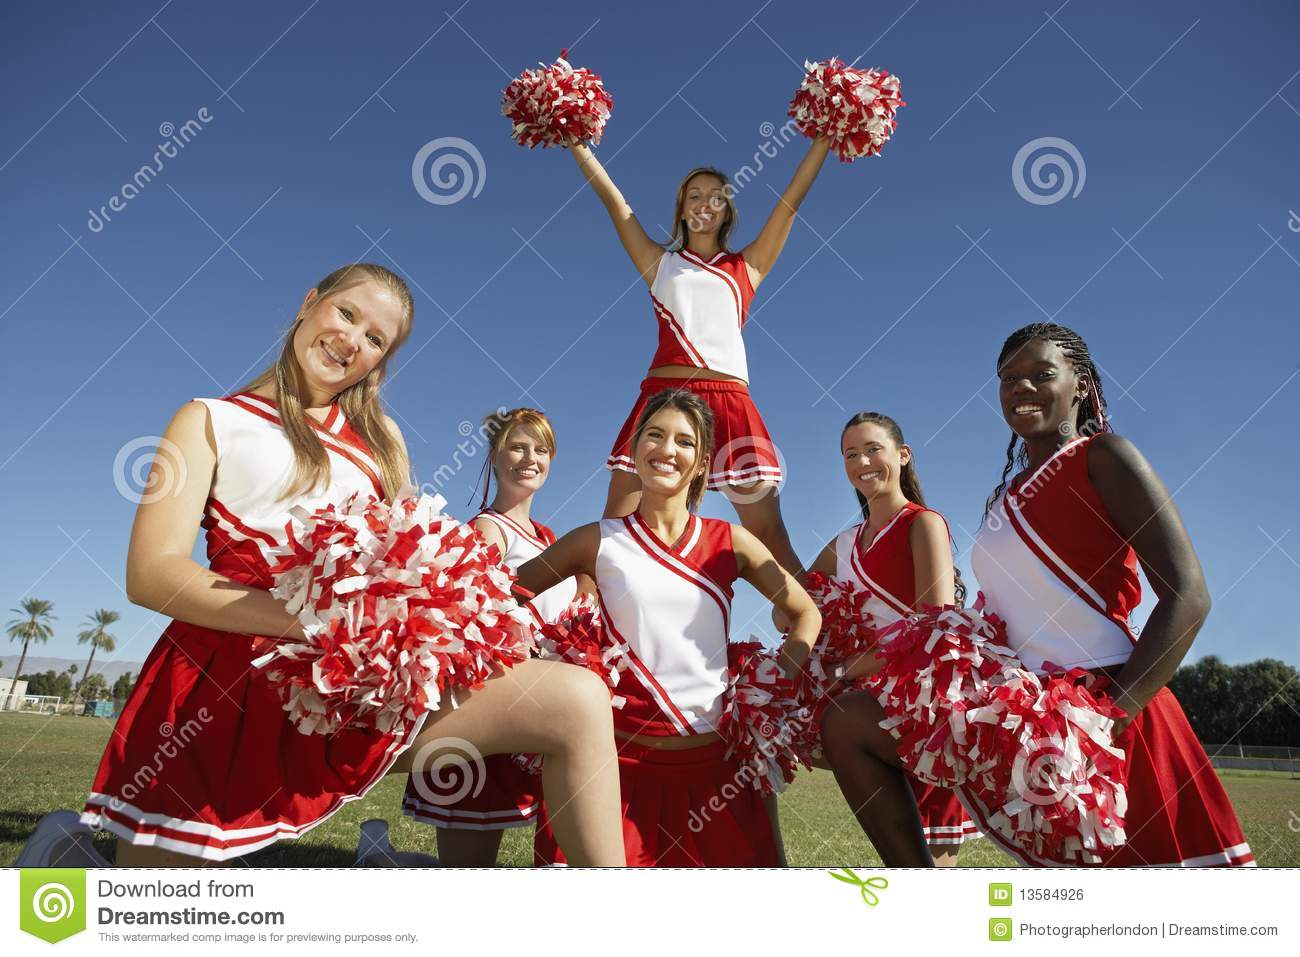 Cheerleading squad in formation on field